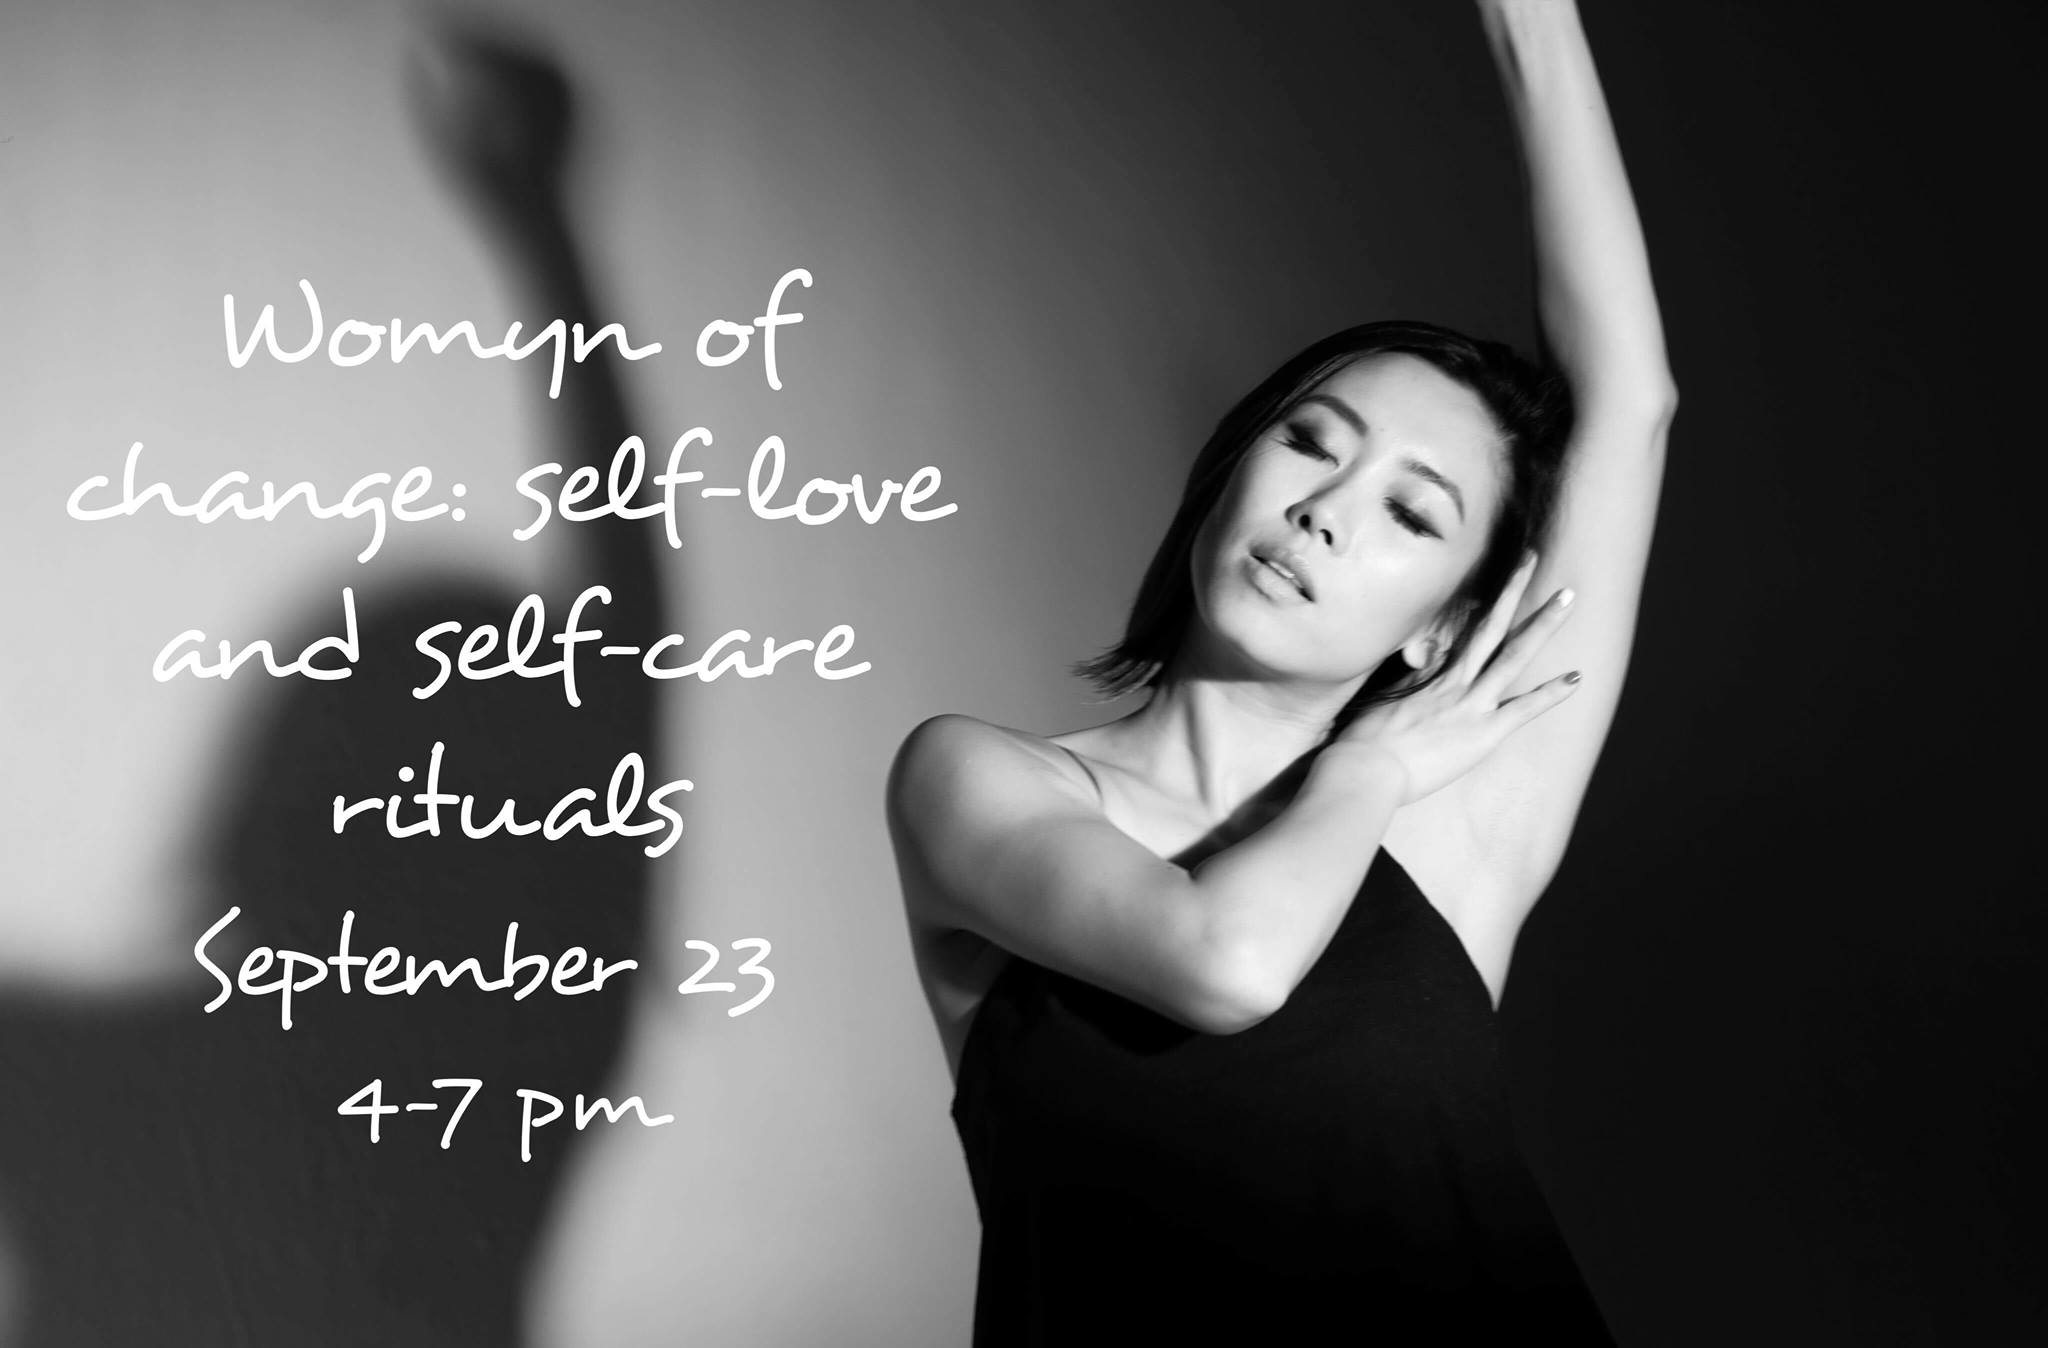 Womyn of change - SupeRoleModel Kristina Block leads a workshop for women with self care and self-love rituarls